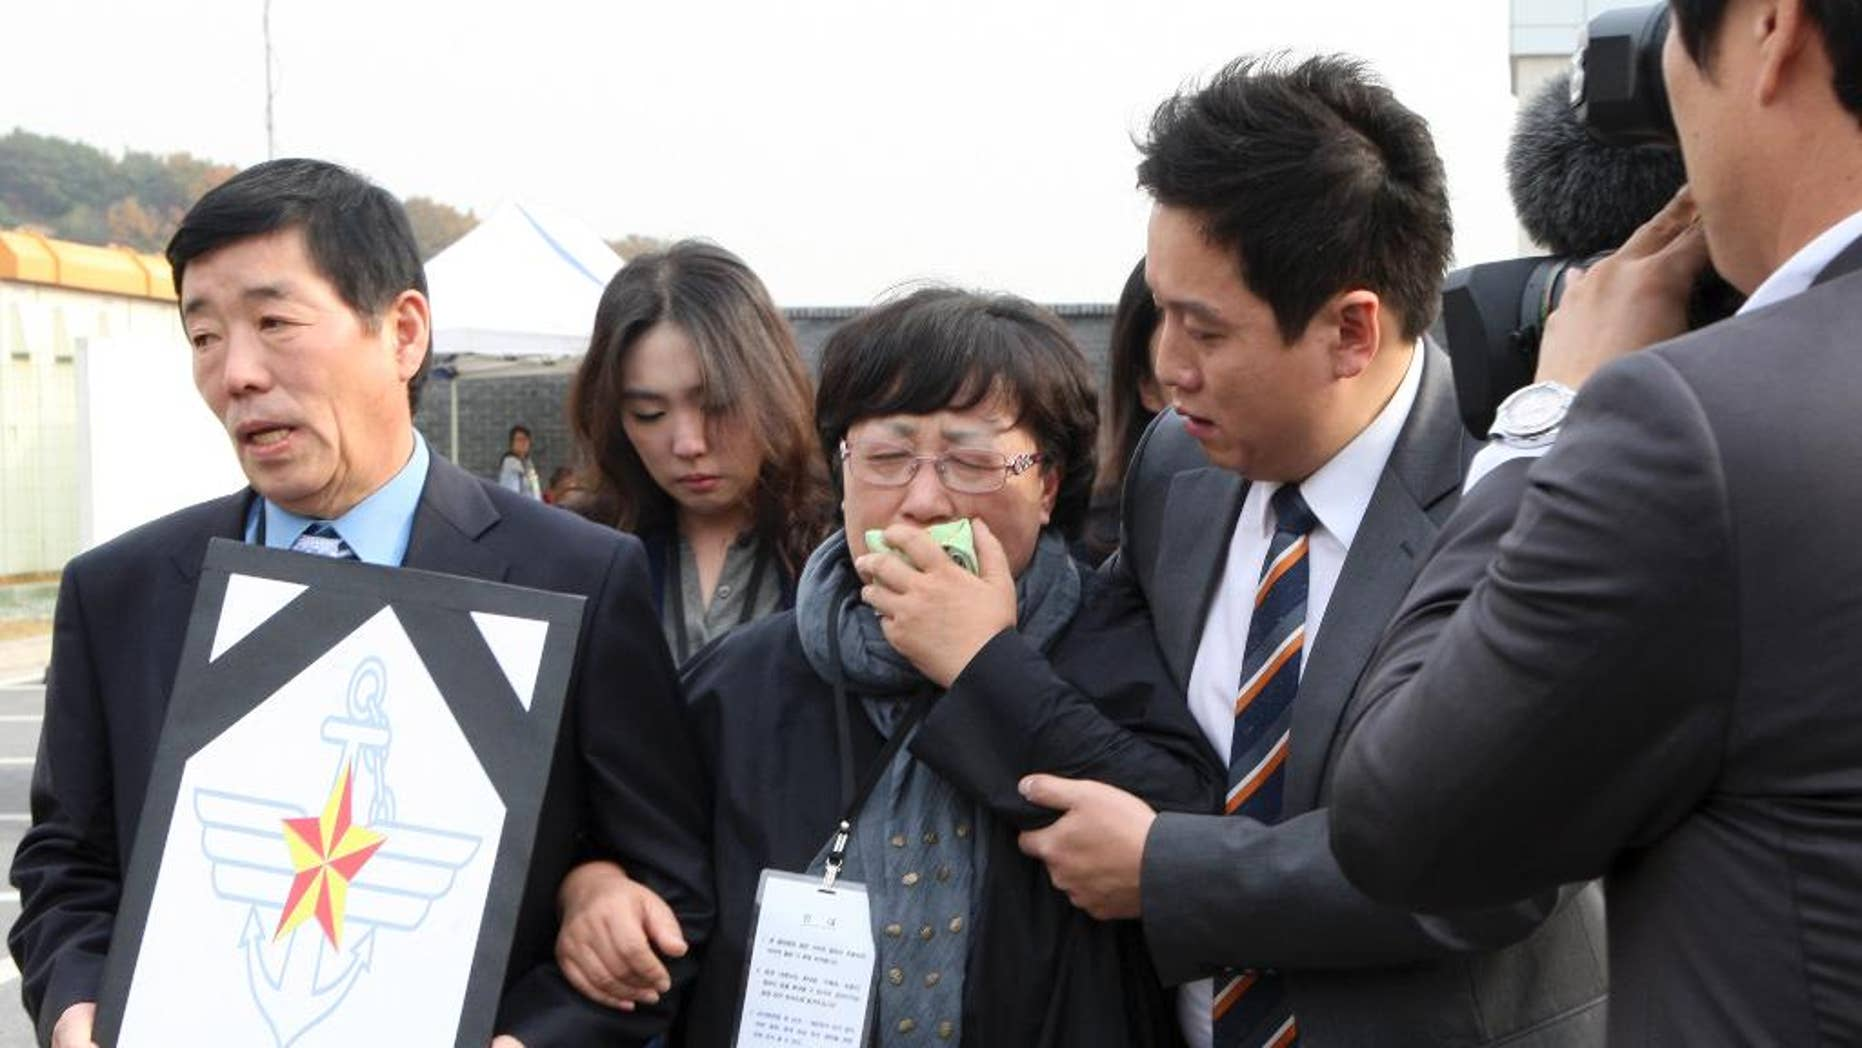 A mother, center, of a victim, identified as Private First Class Yoon, cries after the trial at an outside of military court in Yongin, south of Seoul, South Korea, Thursday, Oct. 30, 2014. South Korea's Defense Ministry says a military court has sentenced six soldiers to up to 45 years in prison for bullying and beating a subordinate who died. (AP Photo/Yonhap, Ryu Soo-hyun) KOREA OUT